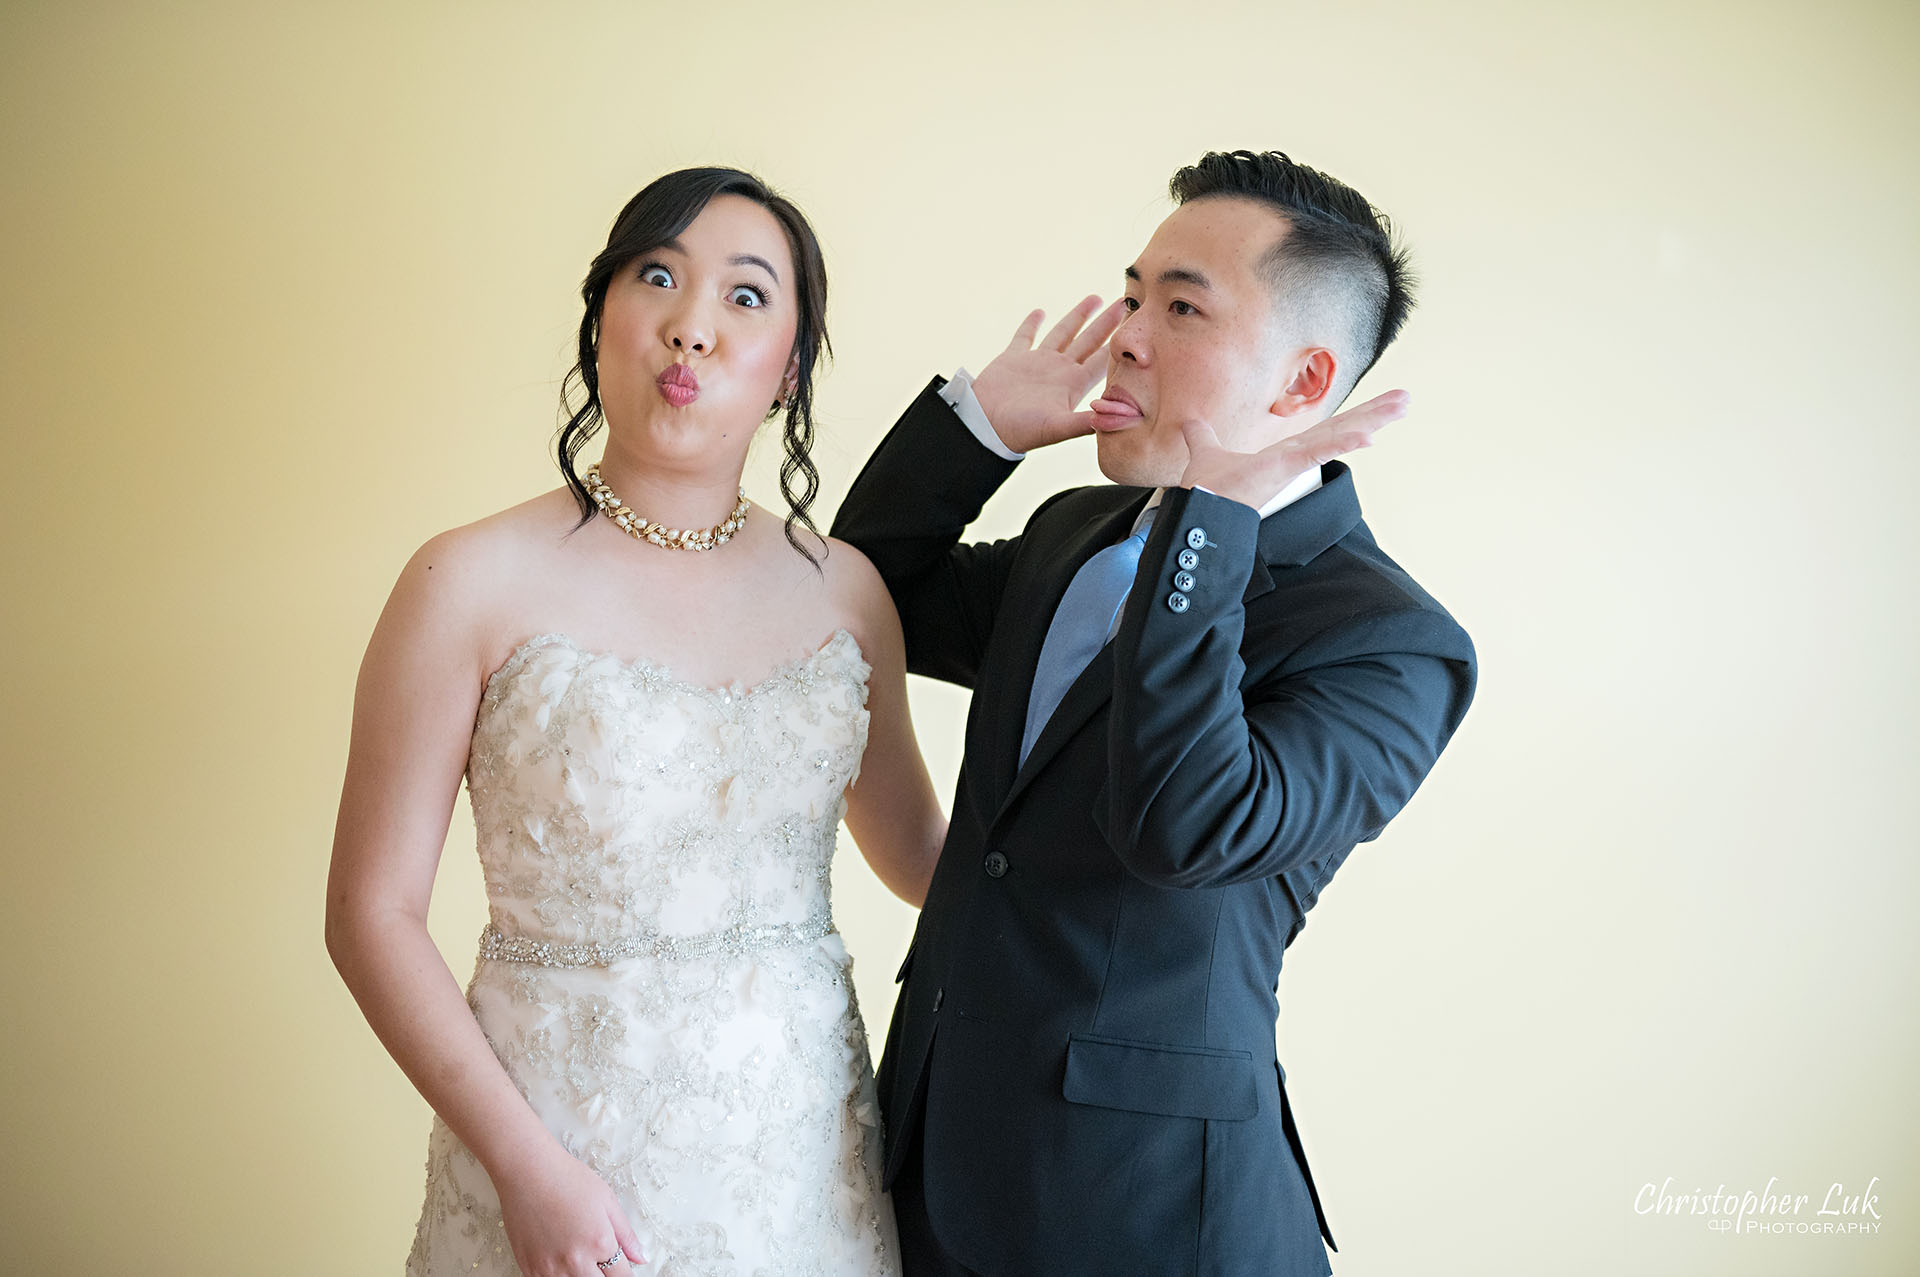 Christopher Luk Toronto Wedding Photographer Bridle Trail Baptist Church Unionville Main Street Crystal Fountain Event Venue Bride Bridal Brother Sibling Funny Faces Natural Photojournalistic Candid